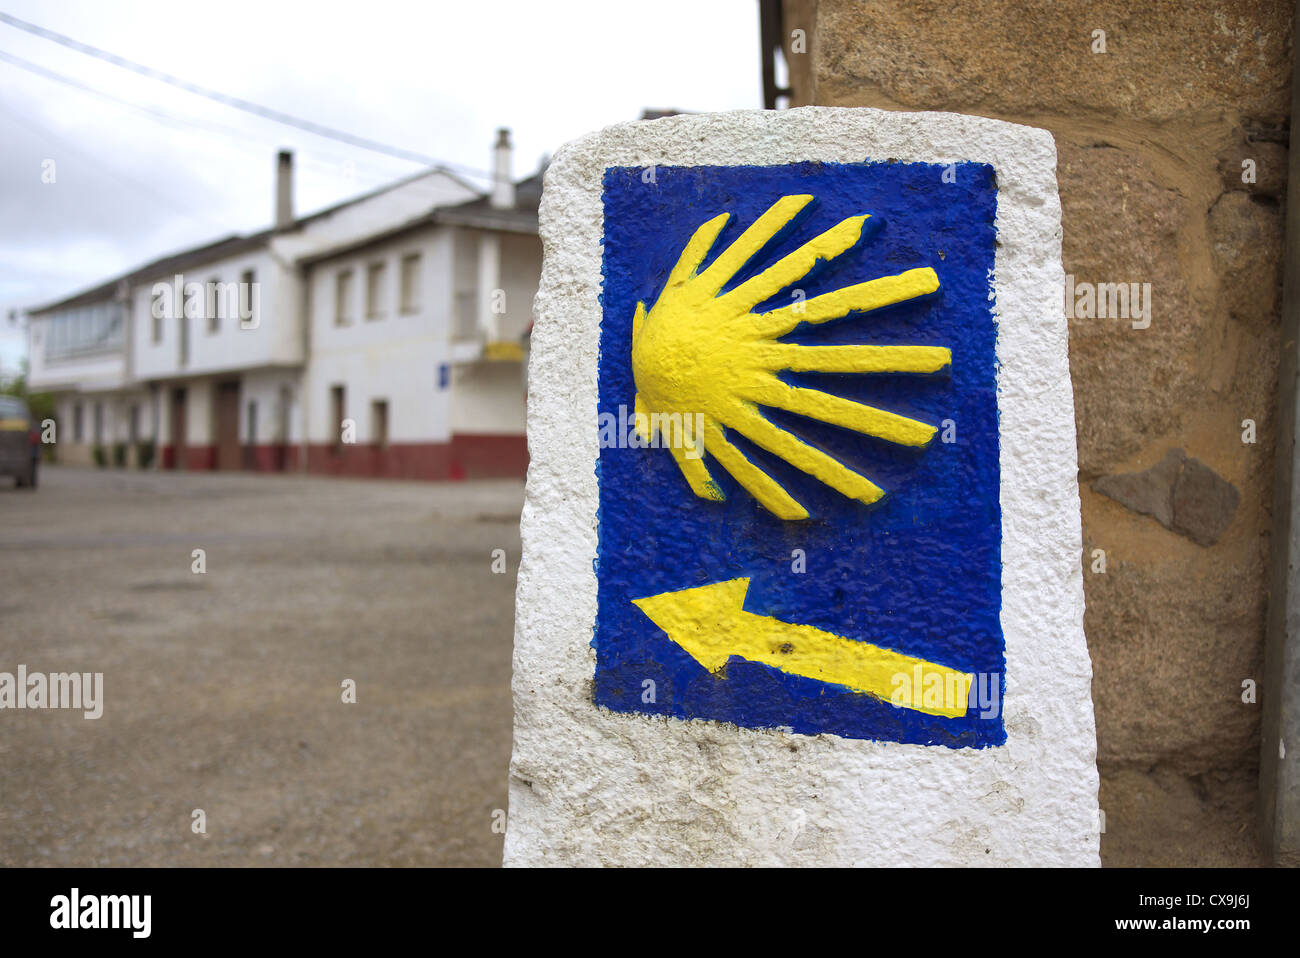 Scallop shell marker for the camino to Santiago de Compostela, Spain. - Stock Image